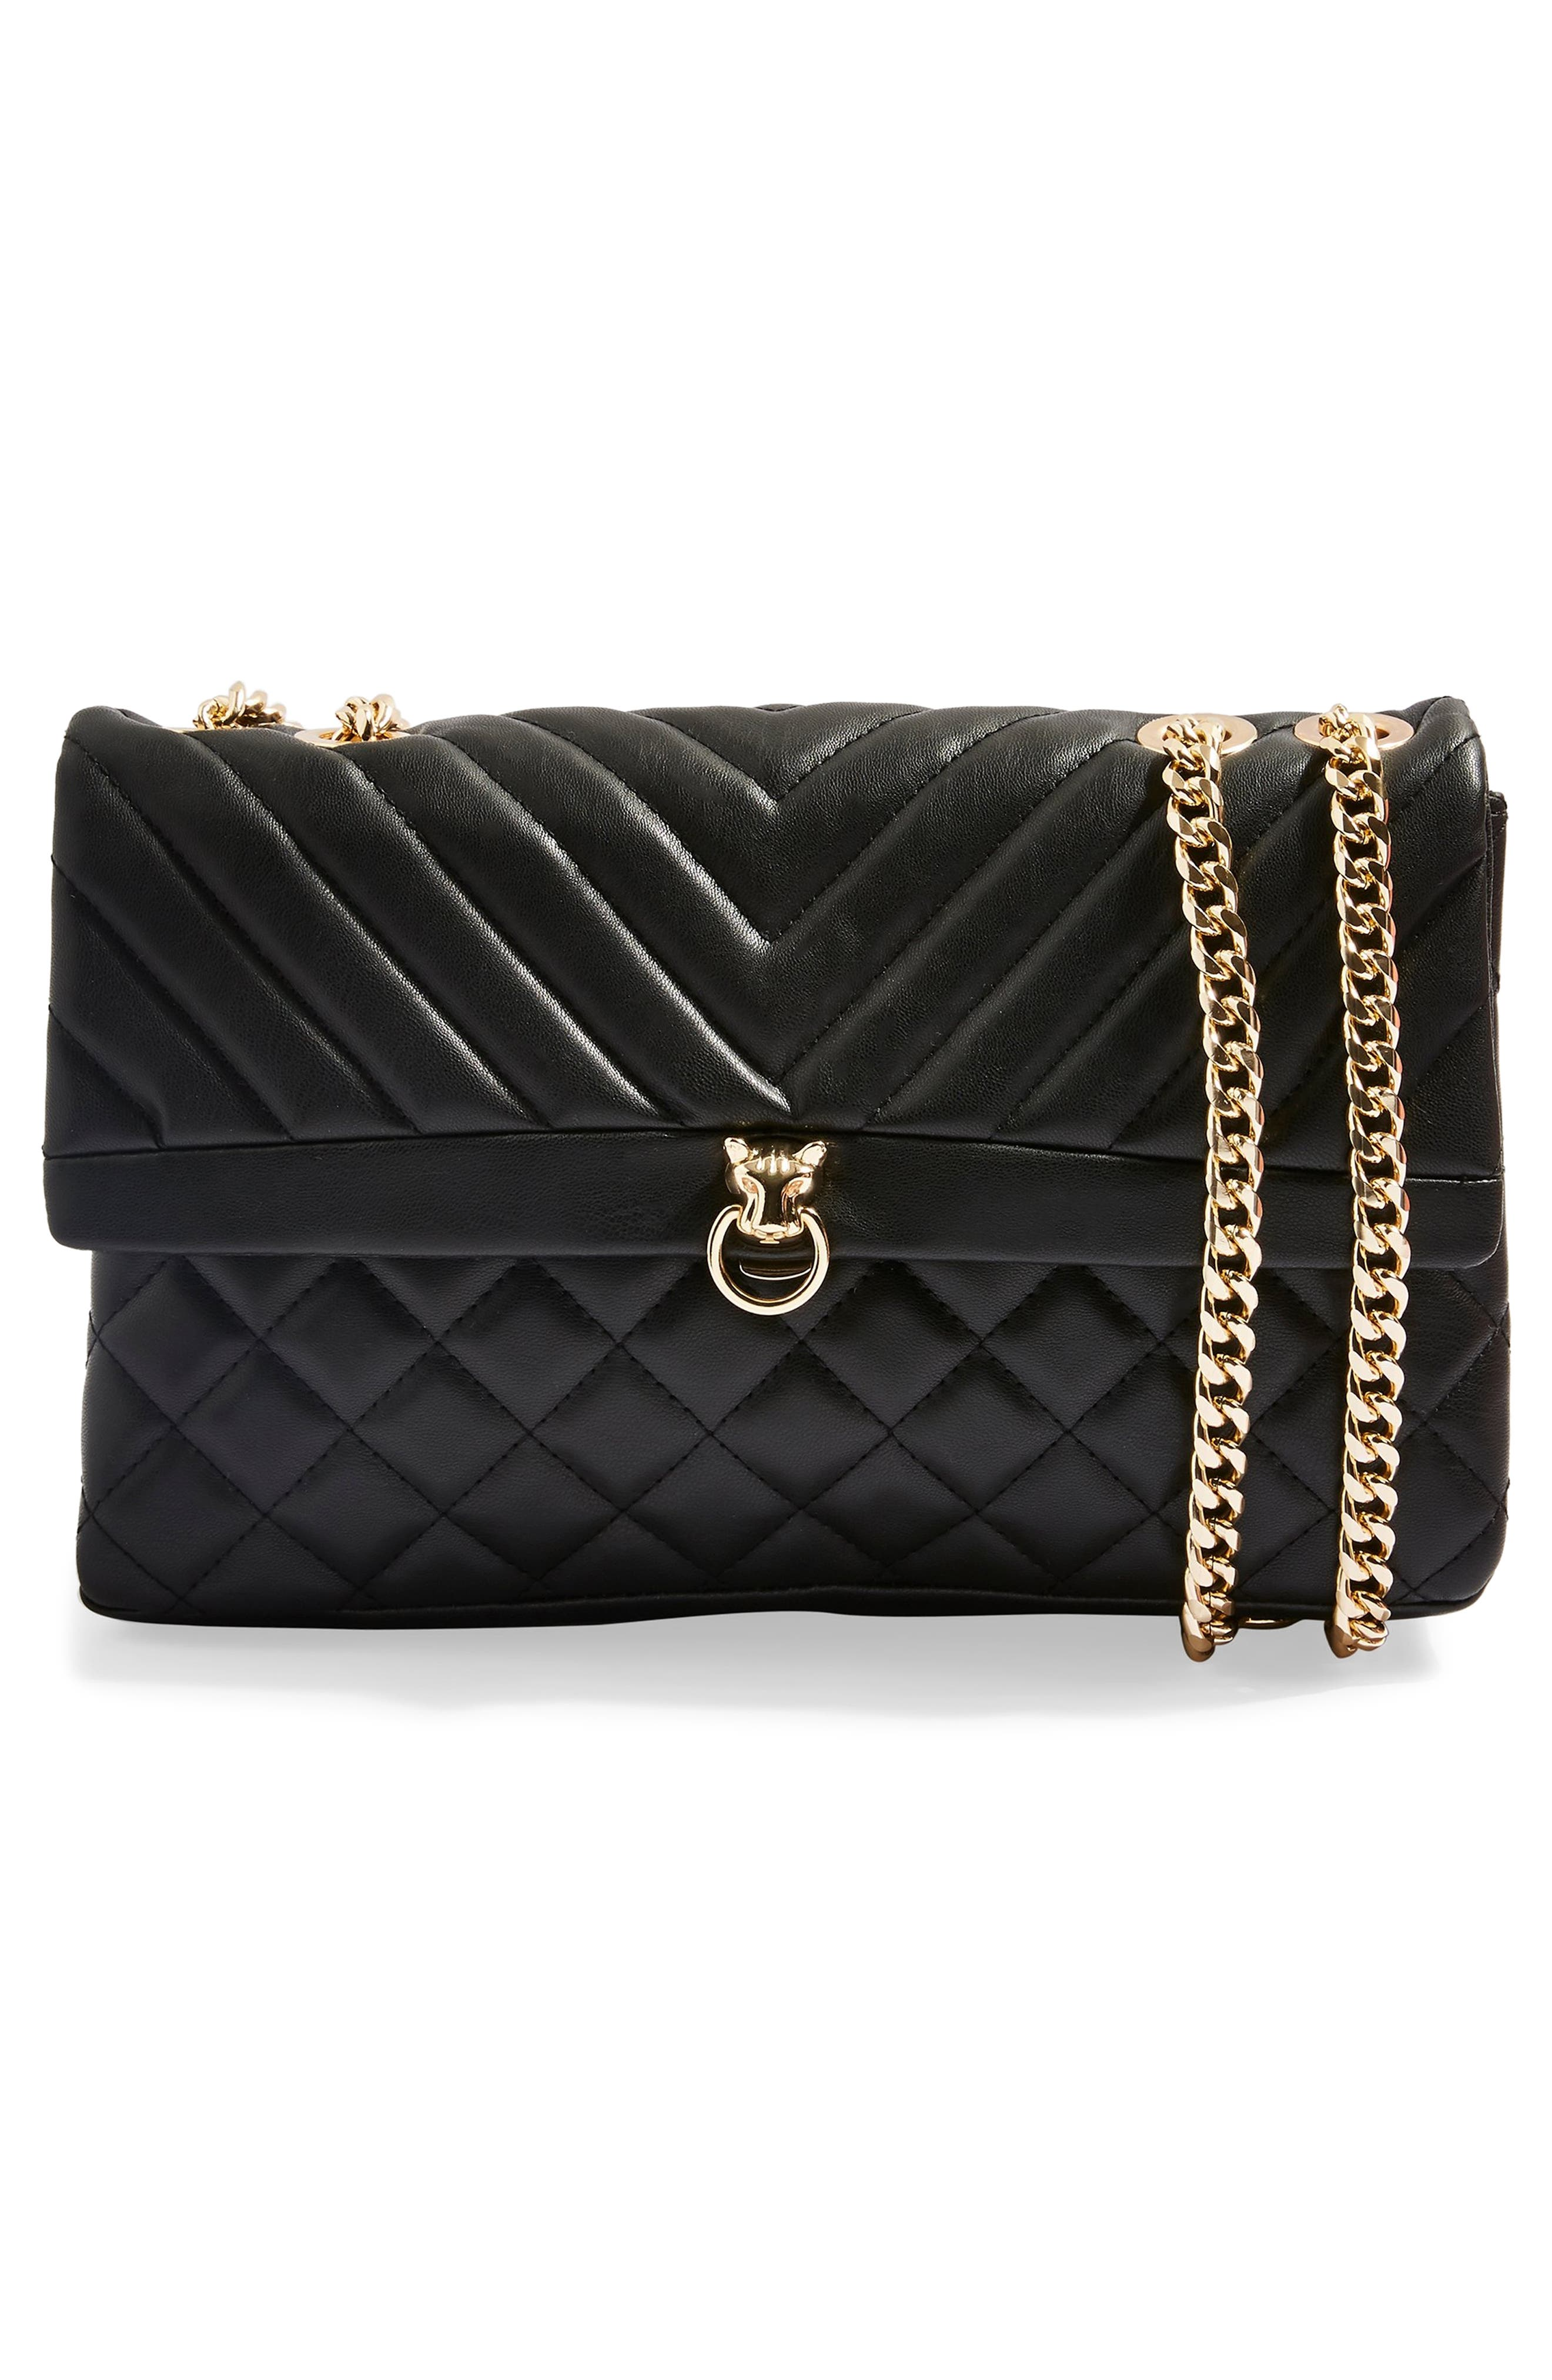 TOPSHOP, Panther Quilted Faux Leather Shoulder Bag, Alternate thumbnail 4, color, 001